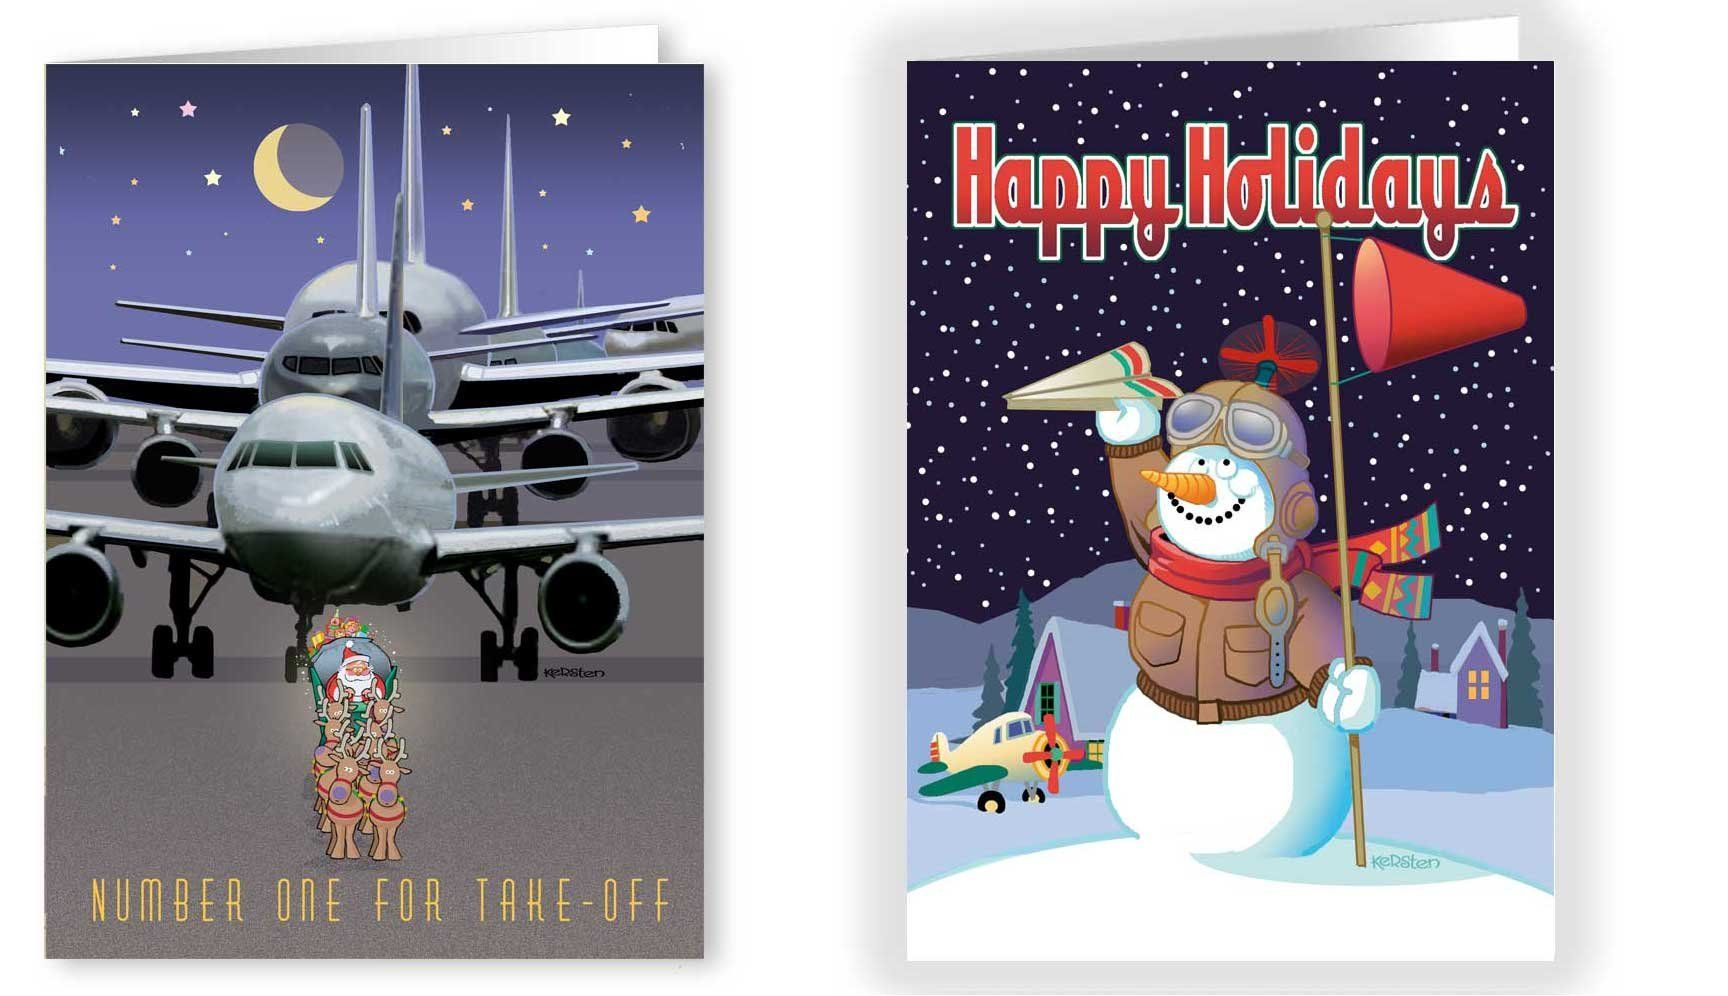 Airplane Christmas Card Variety Pack 24 Cards and Envelopes Funny ...